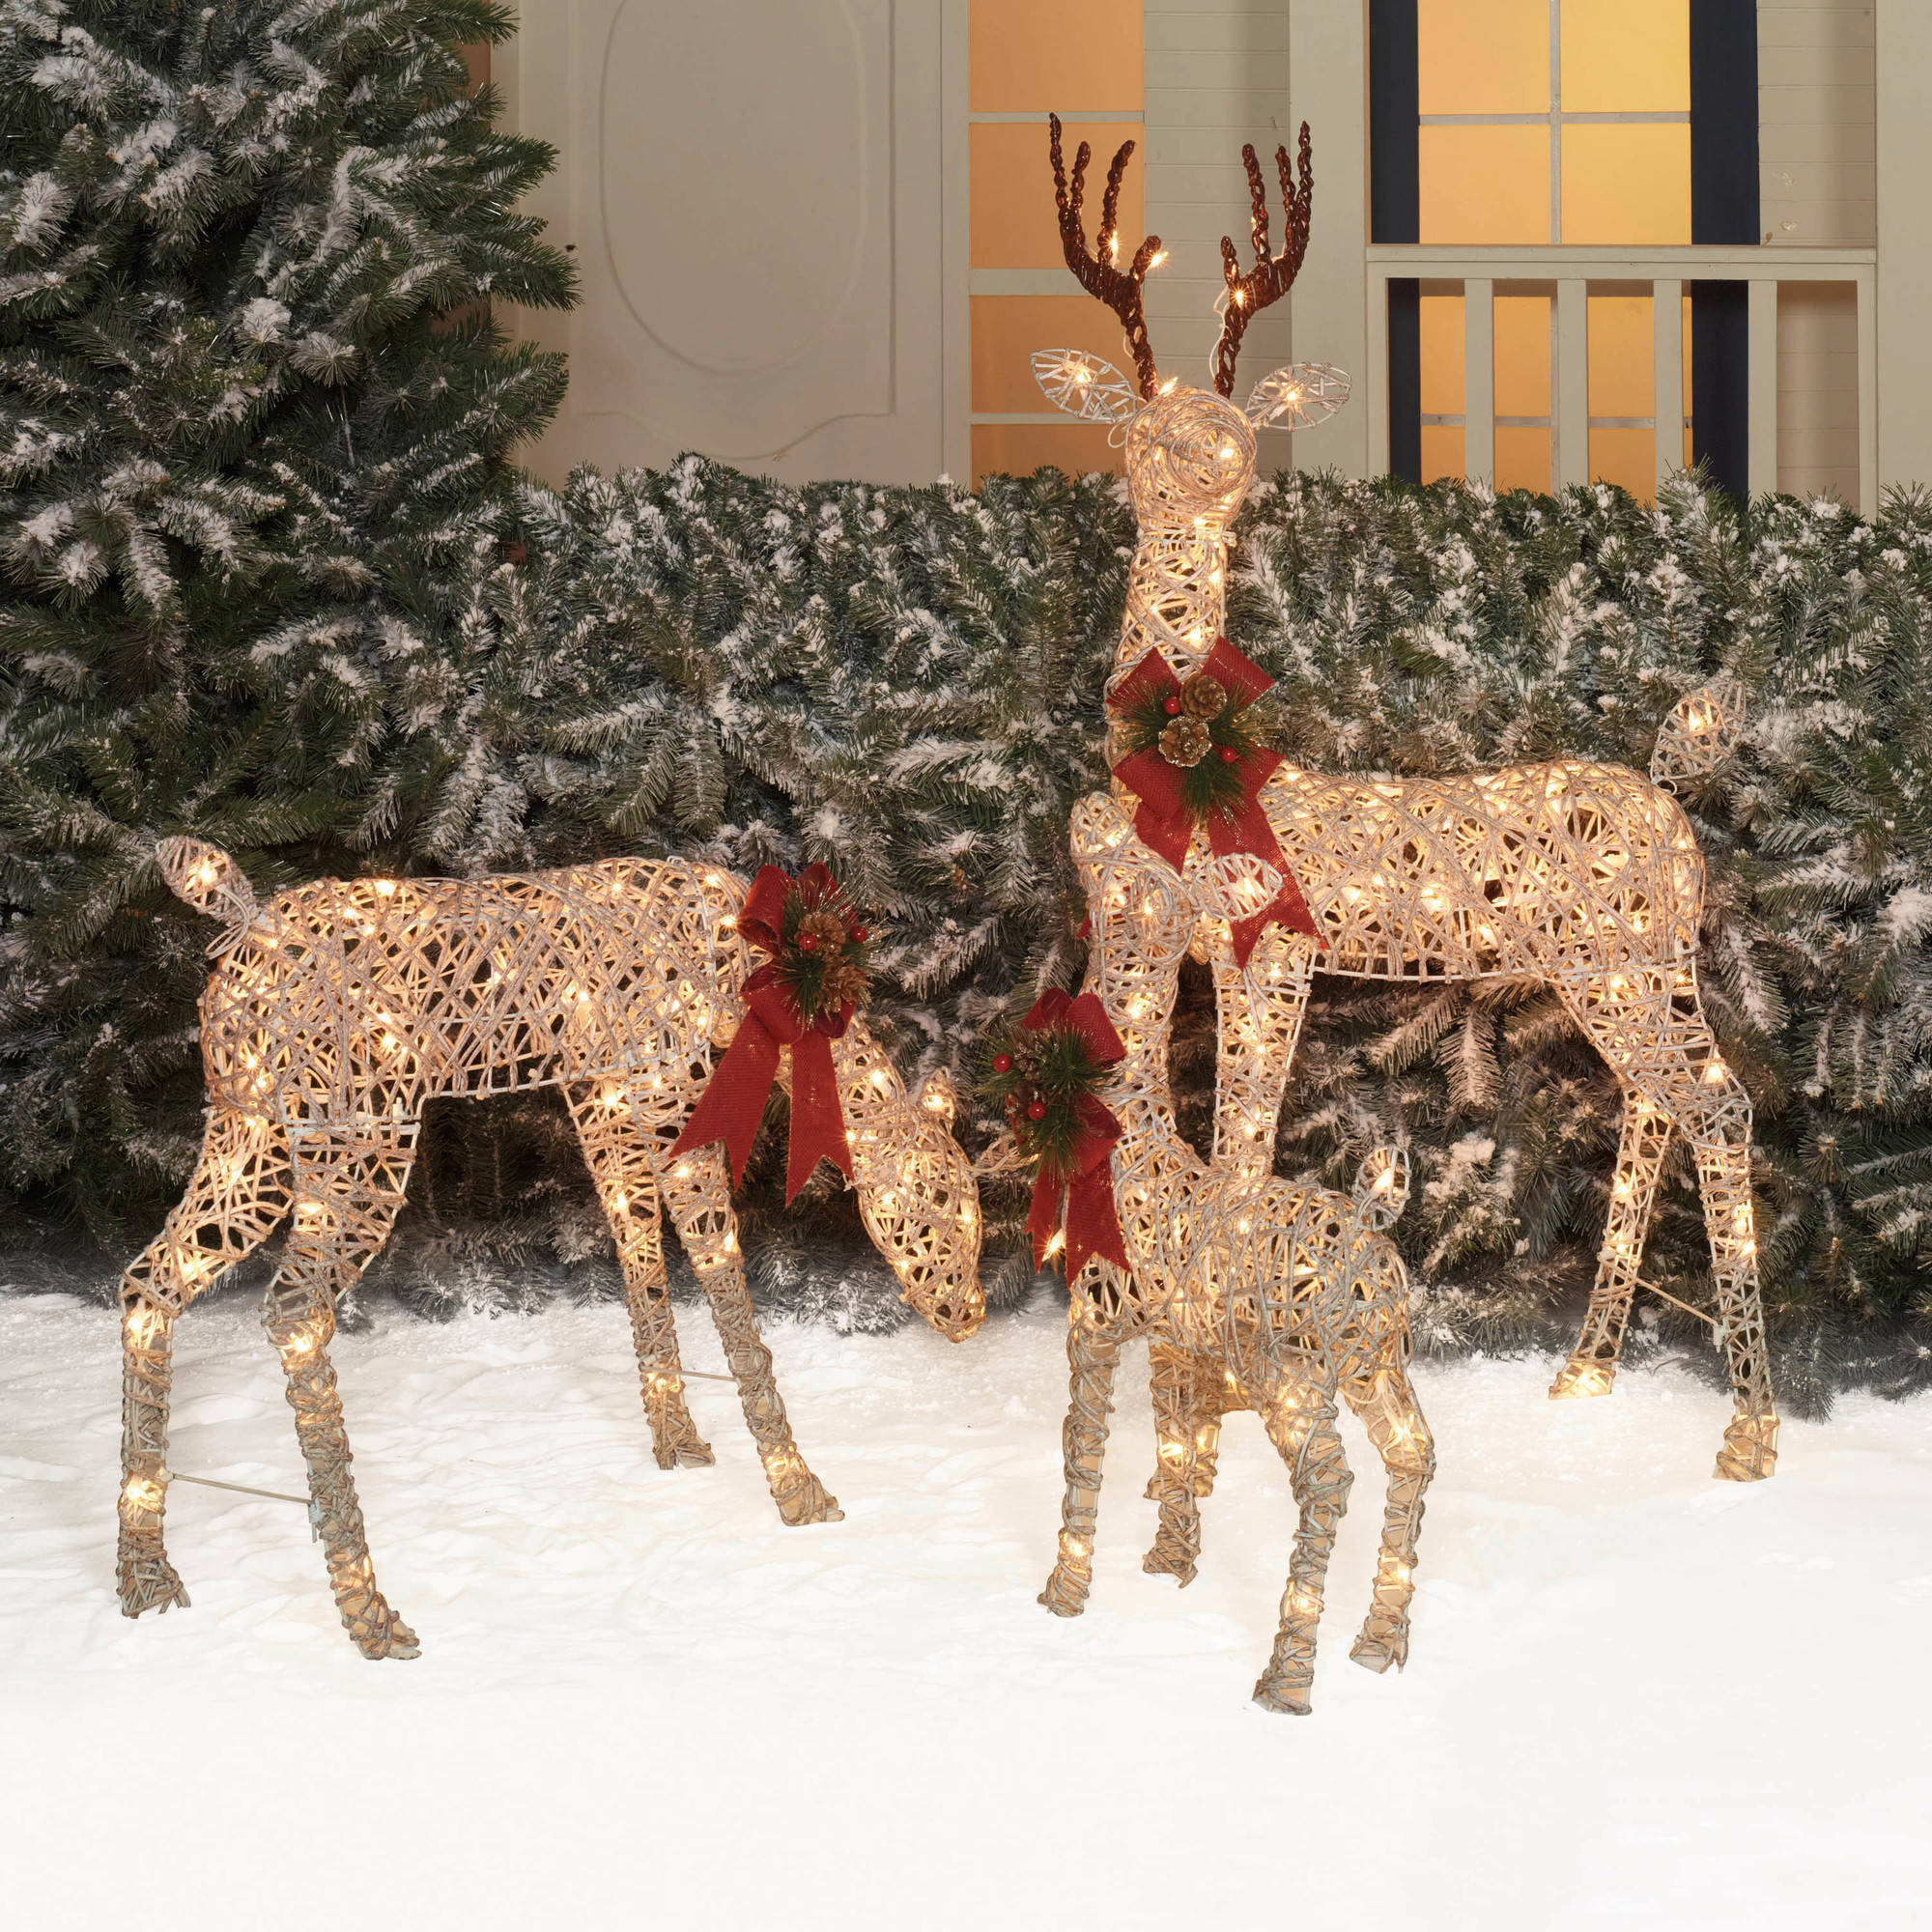 holiday time christmas decor set of 3 woodland vine deer family sculpture walmartcom - Holiday Time Christmas Decorations